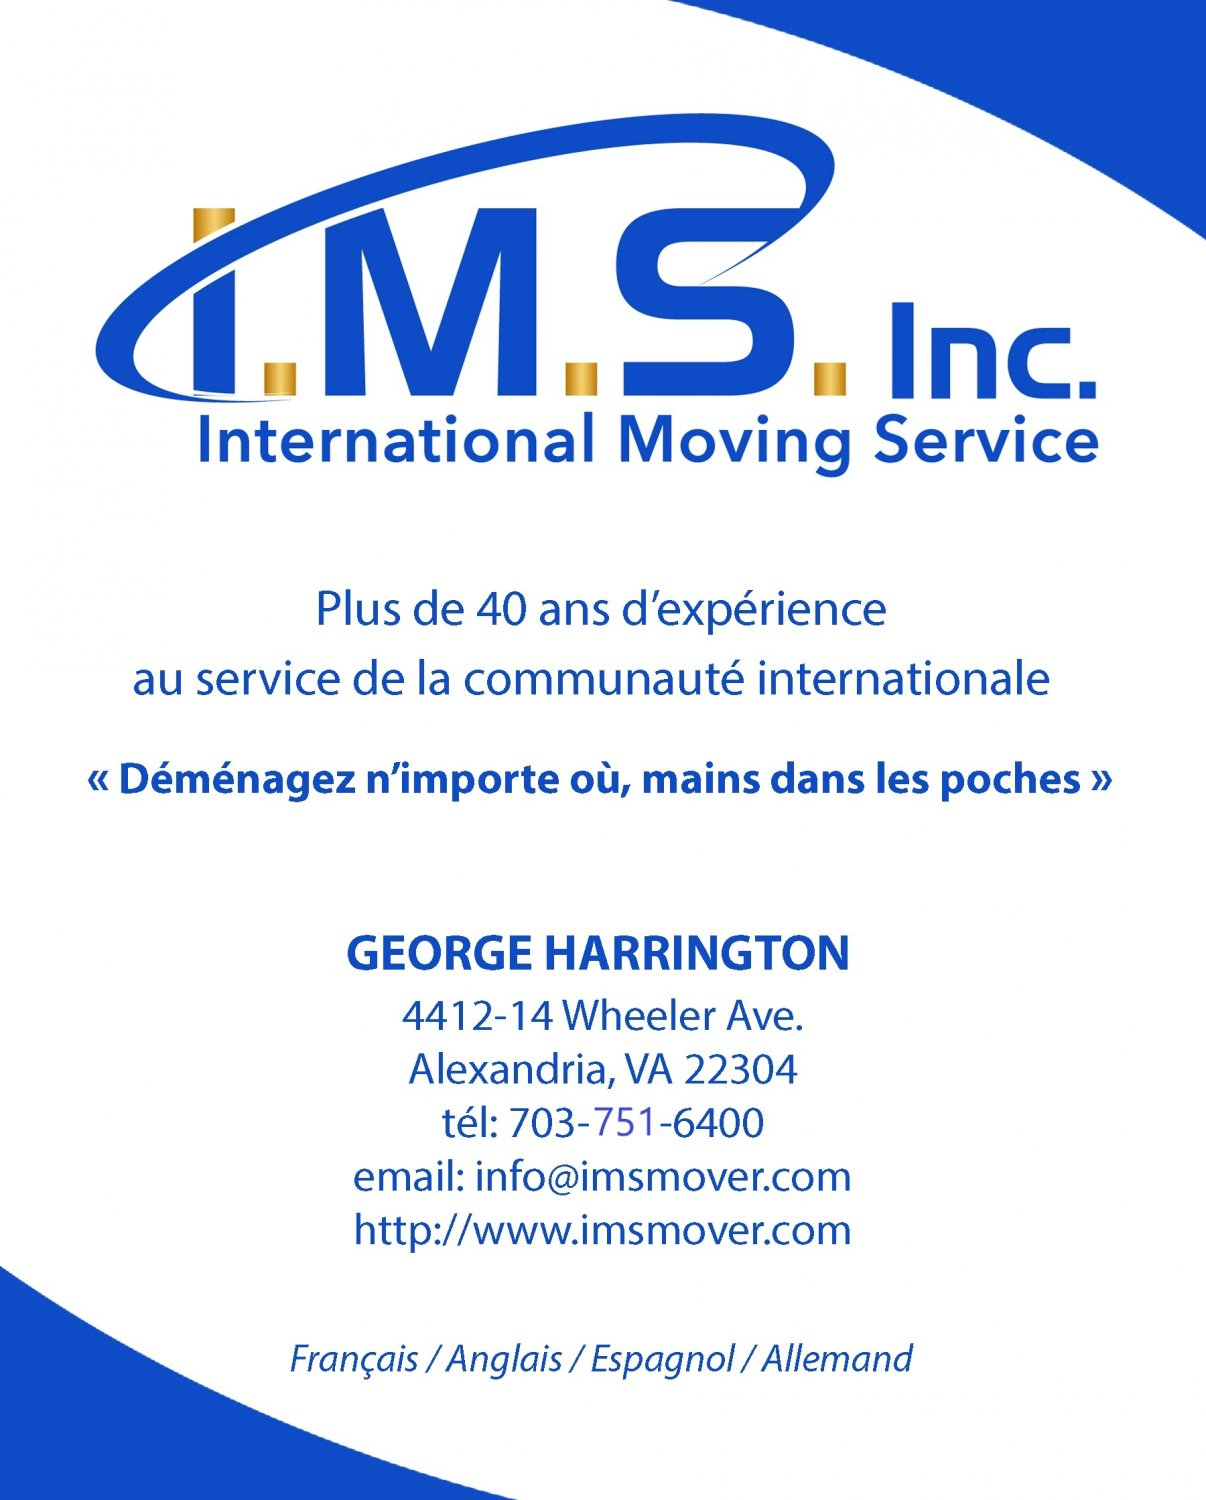 I.M.S. Inc - International Moving Service